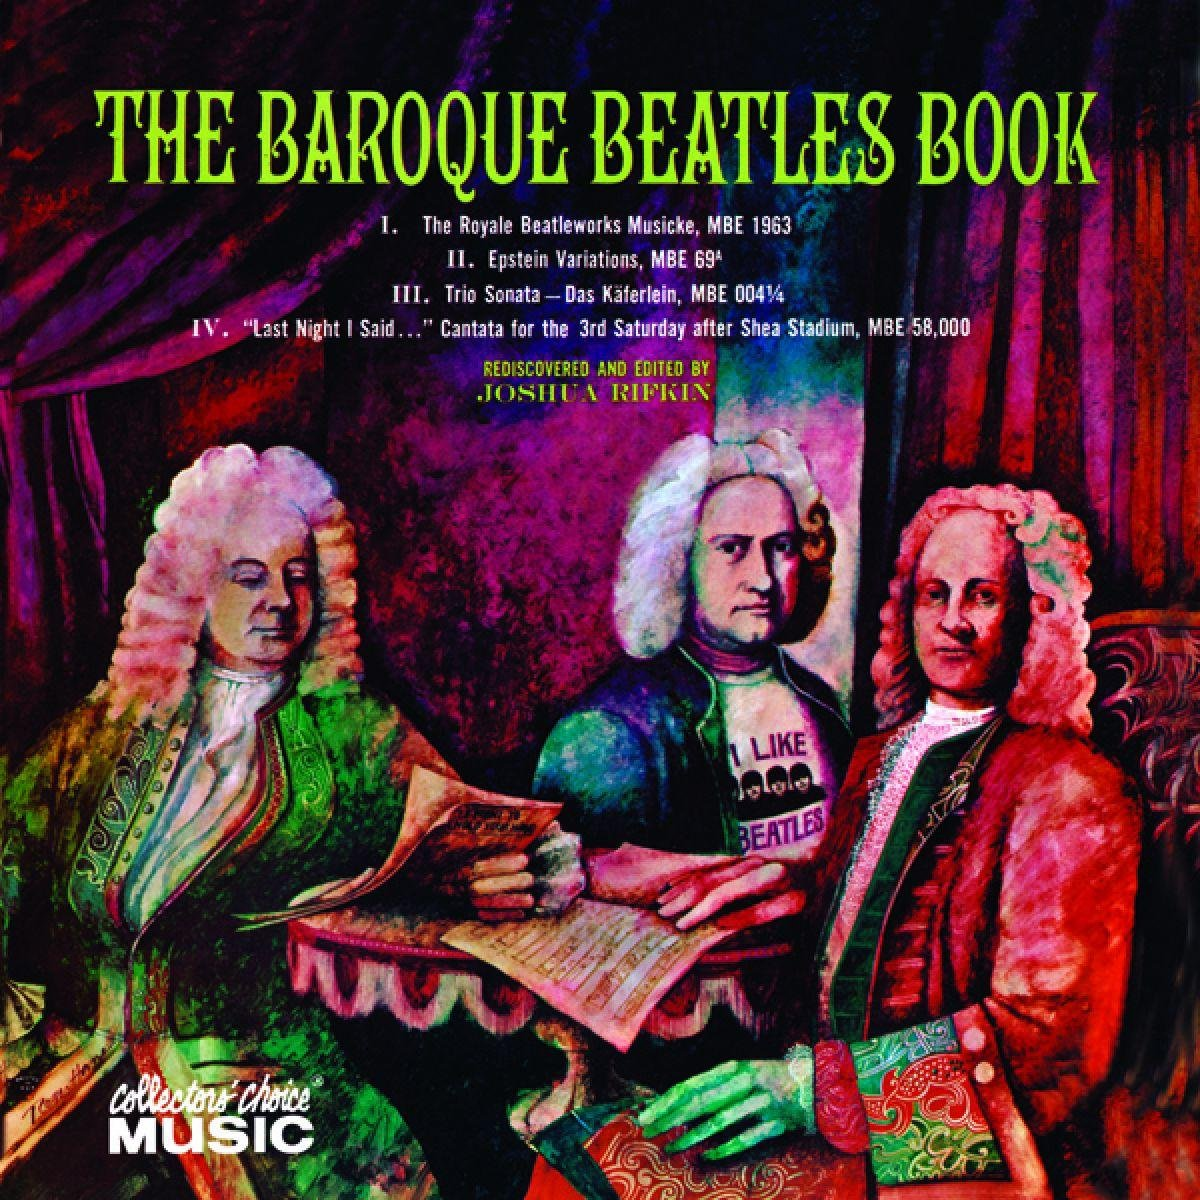 Baroque Beatles Book by Collector's Choice